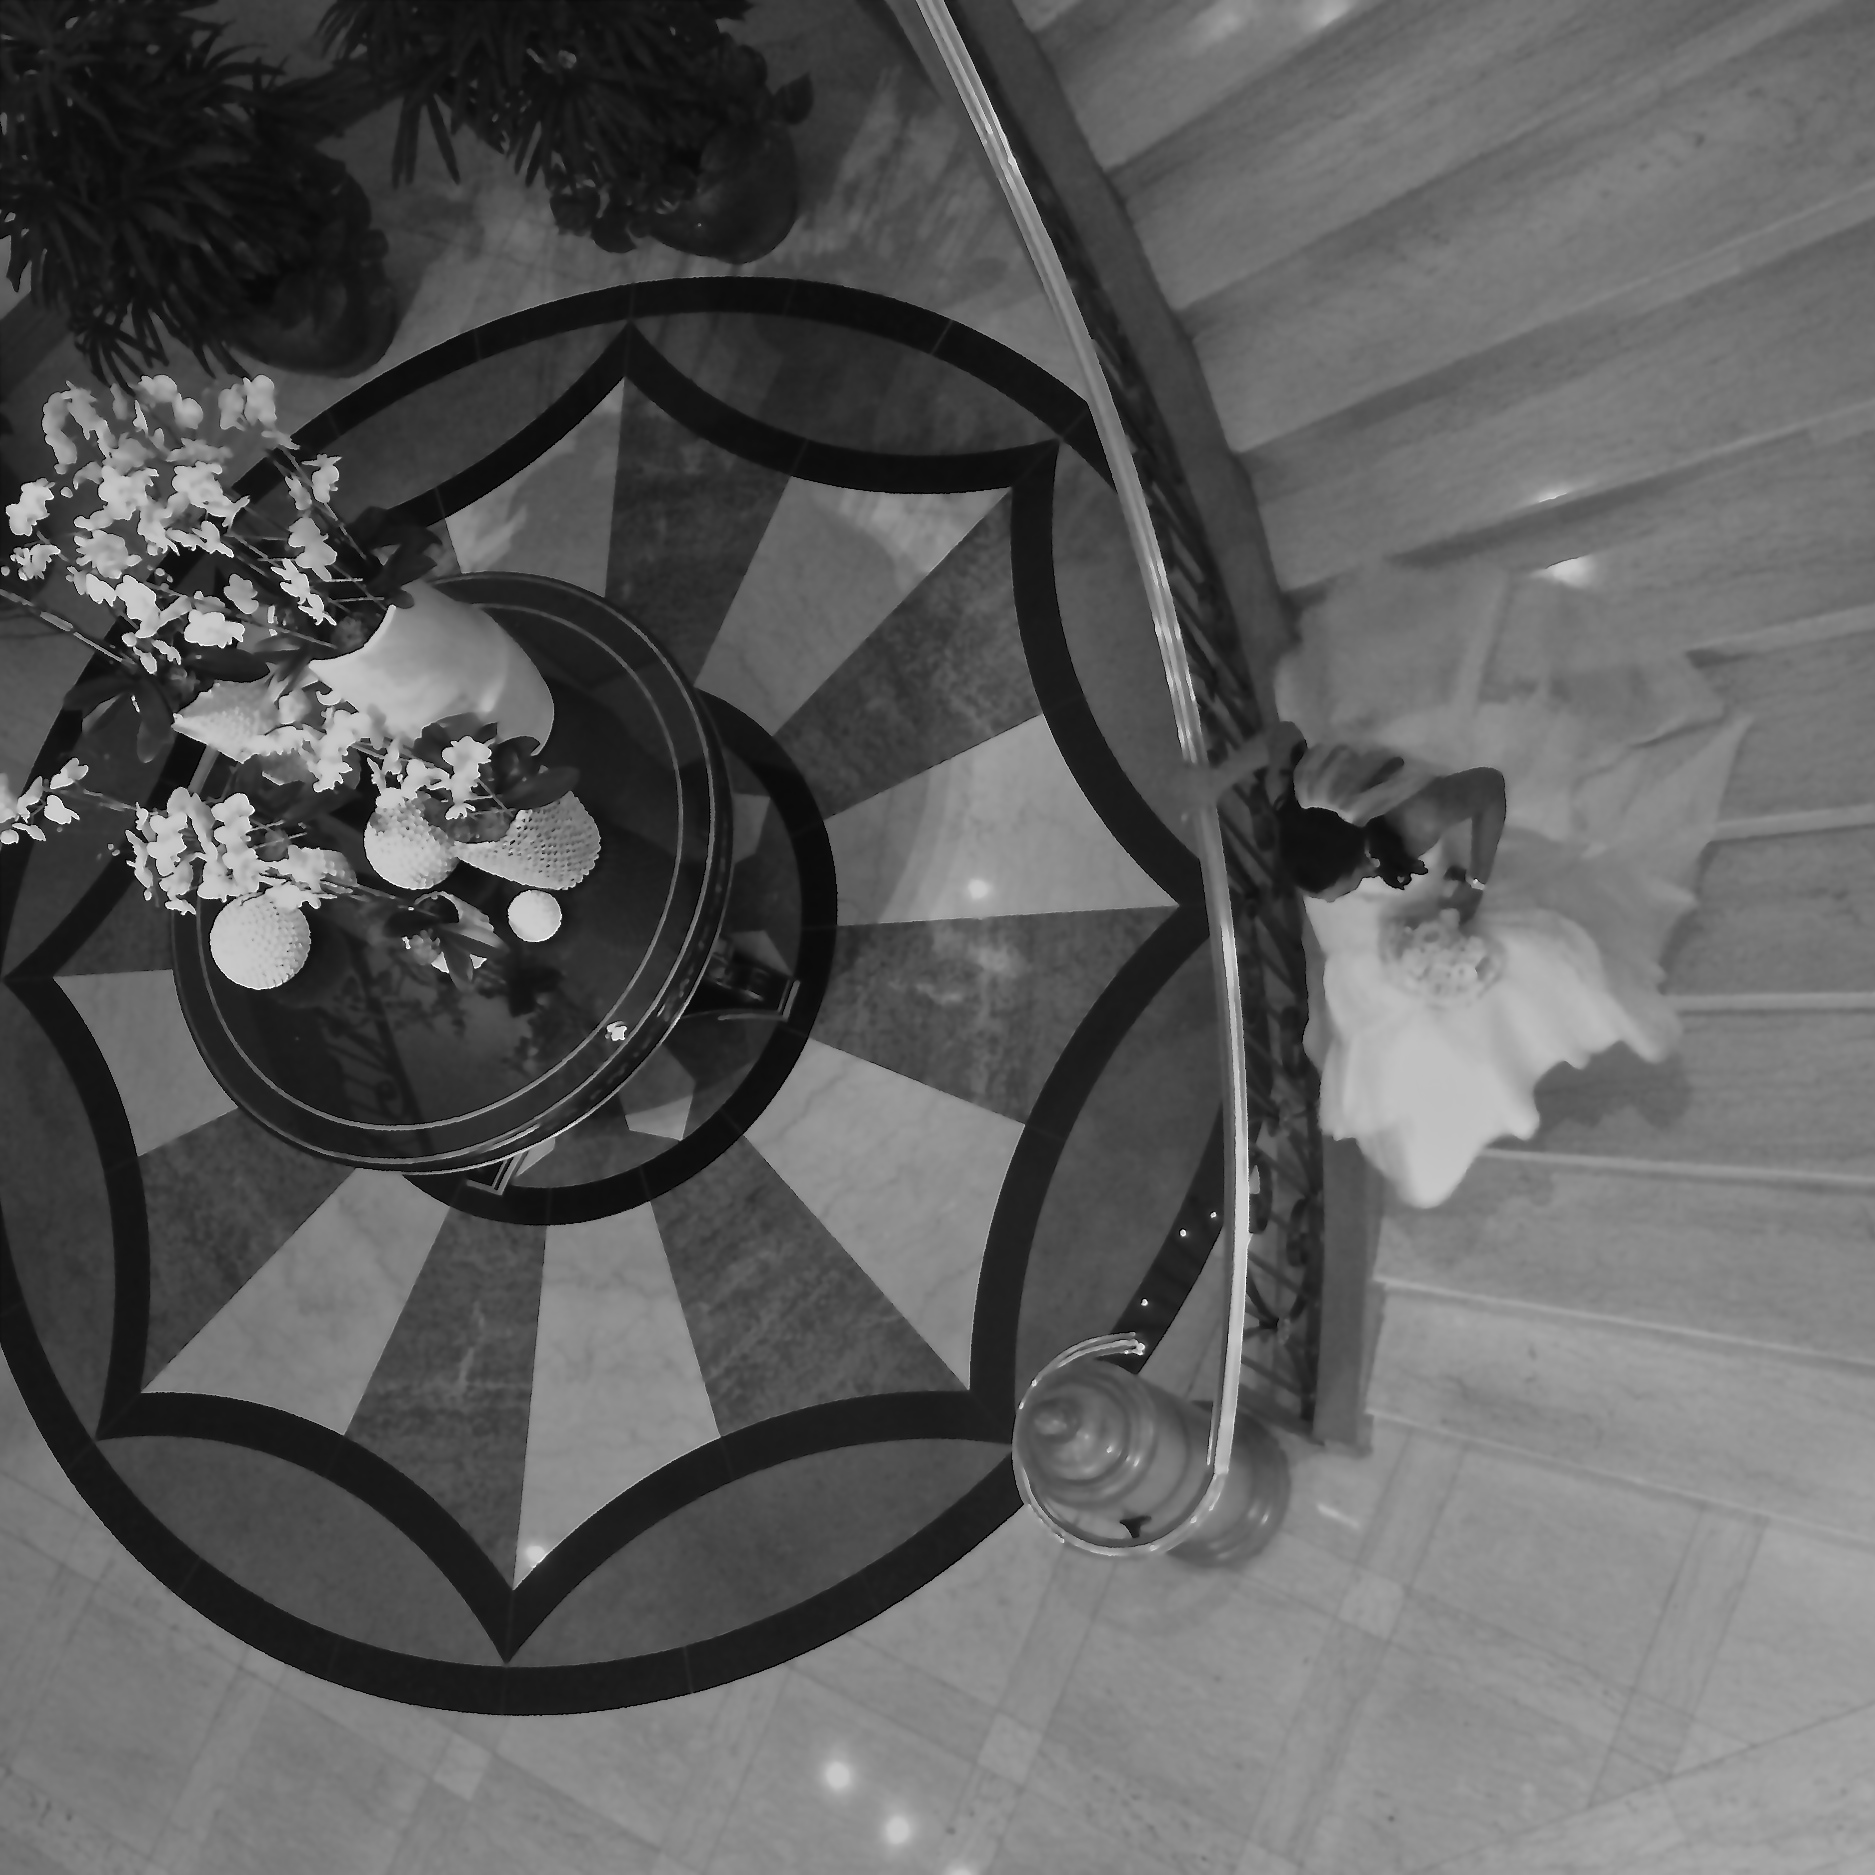 The bride walked down the curved staircase to meet her groom.